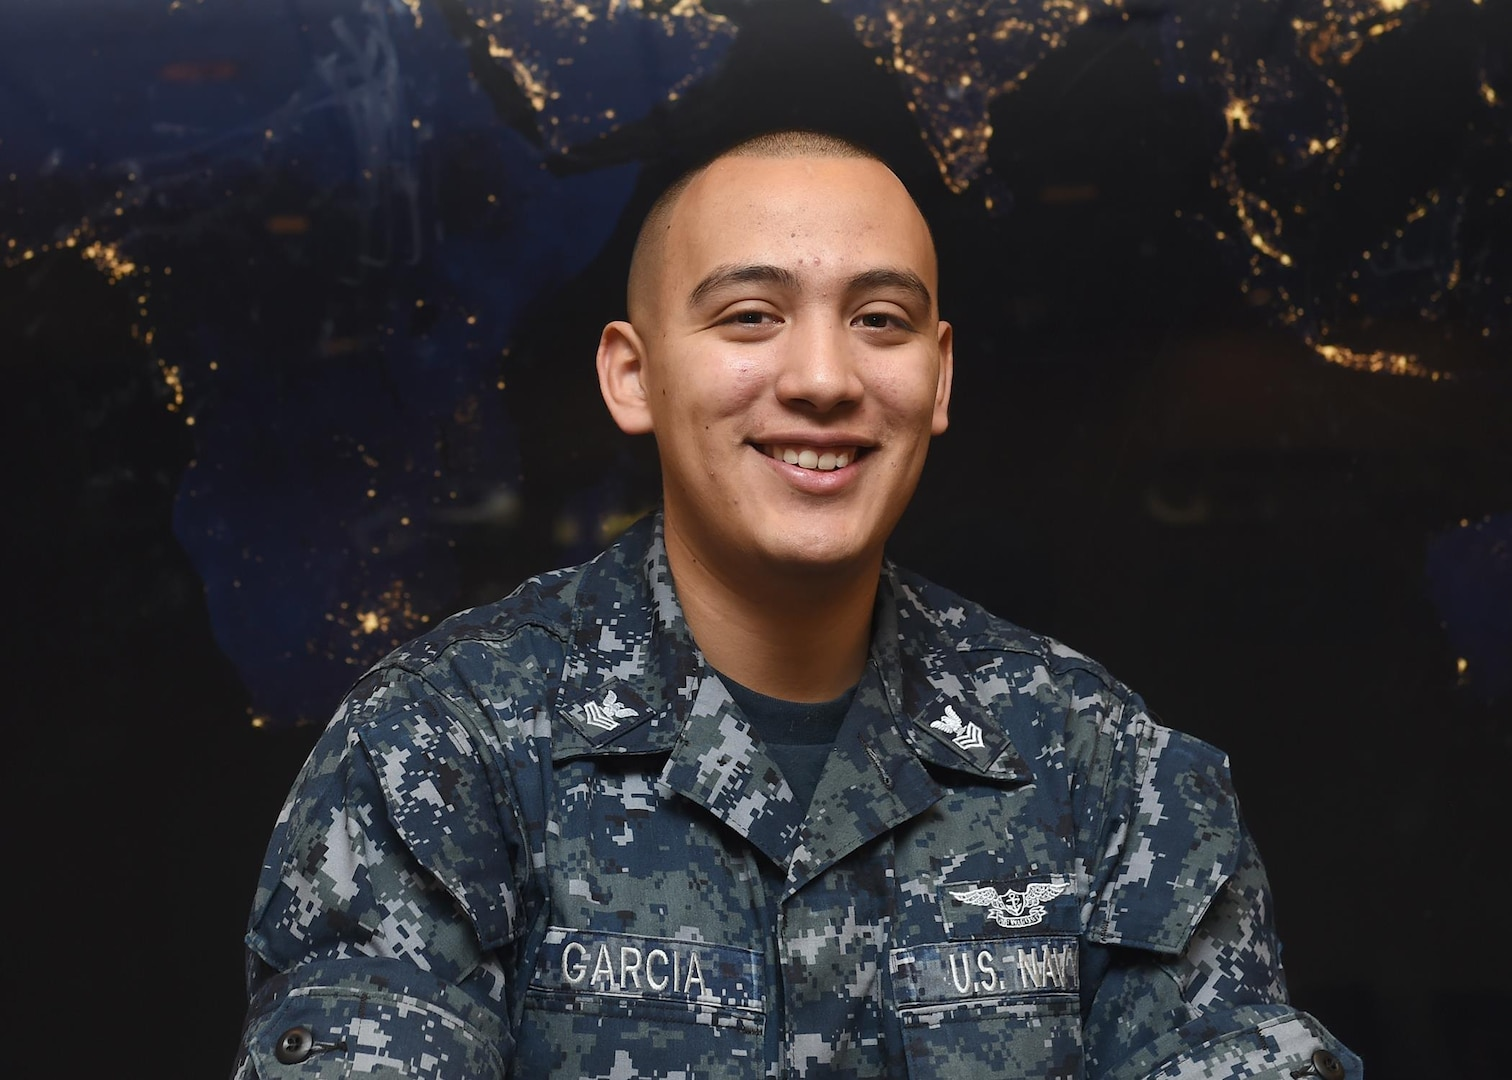 Petty Officer First Class (YN1) Danny Garcia, Enlisted Corps Spotlight for March 2017